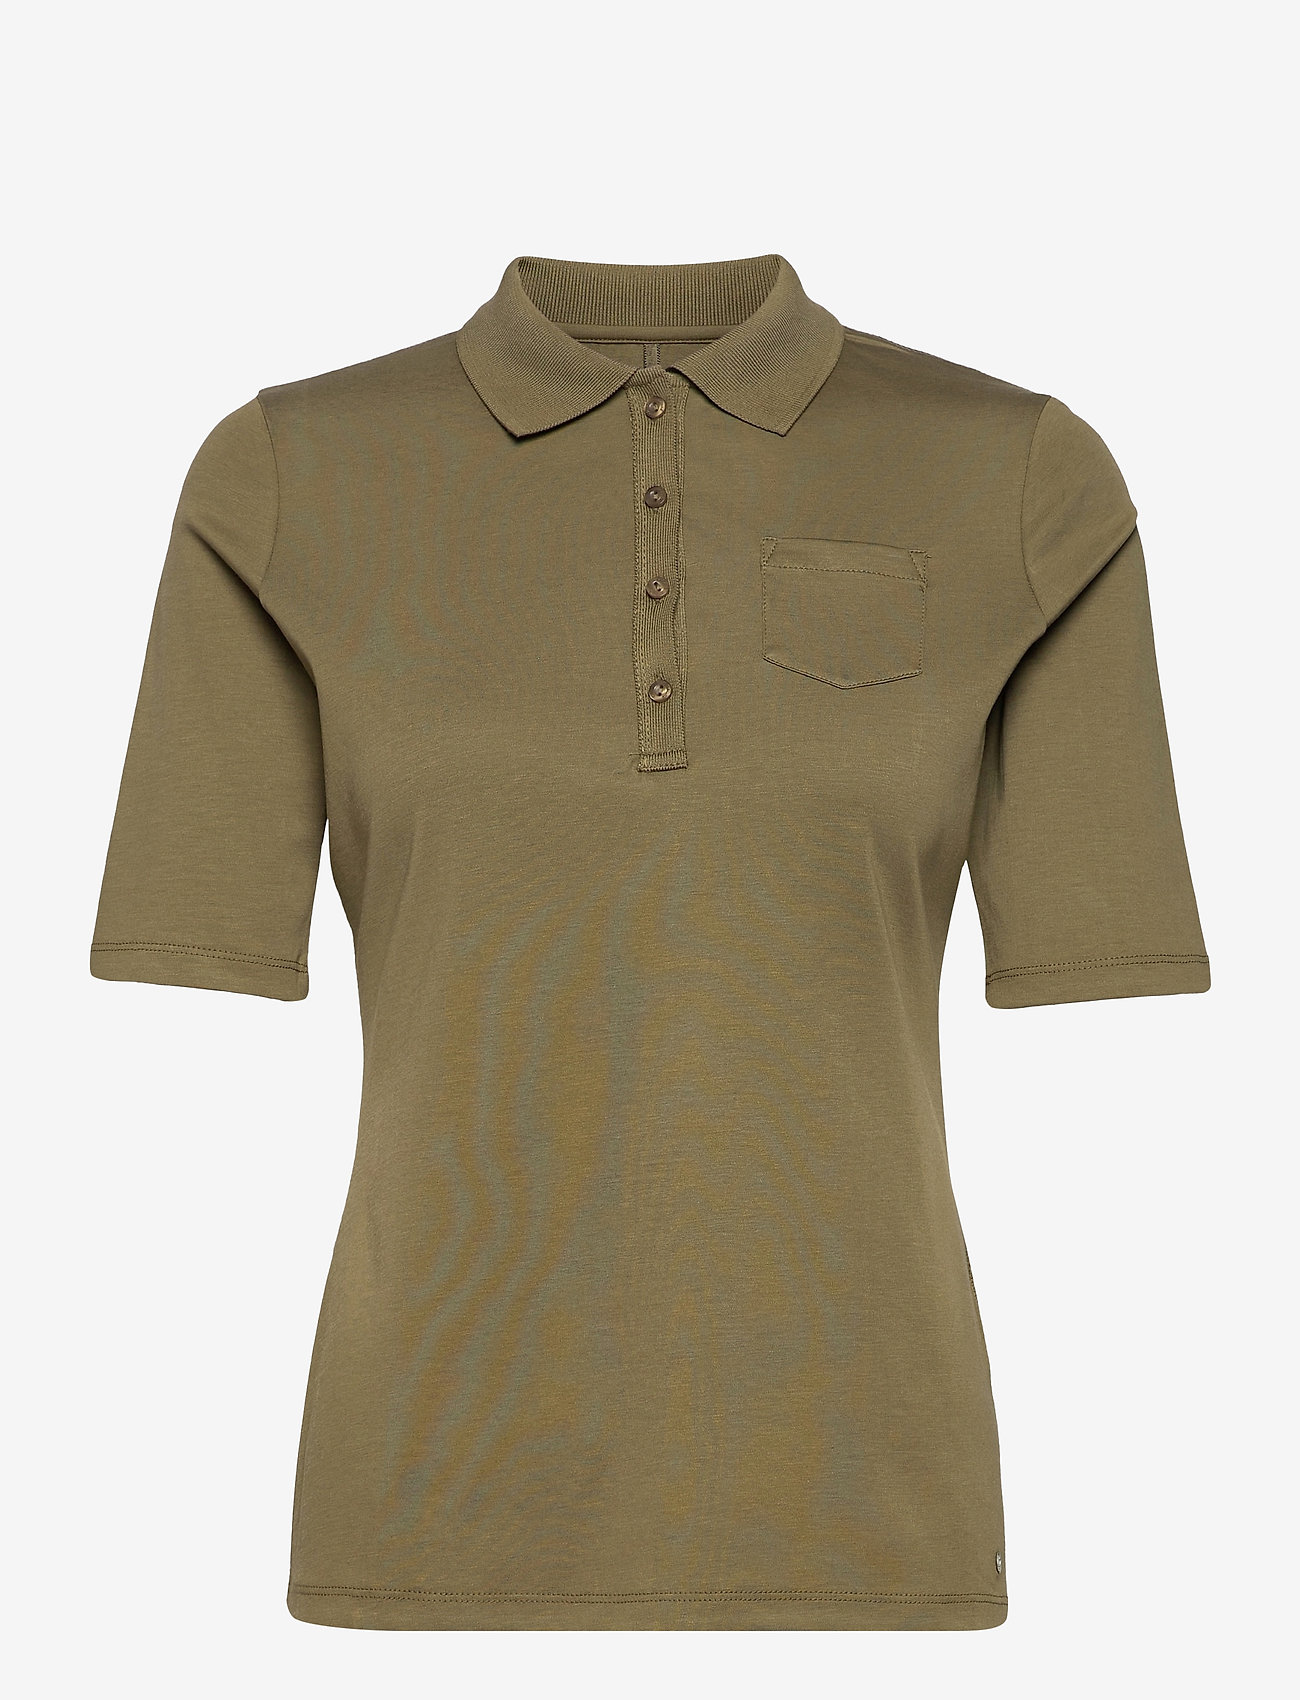 Gerry Weber Edition - POLO SHIRT 3/4 SLEEV - polohemden - light khaki - 0